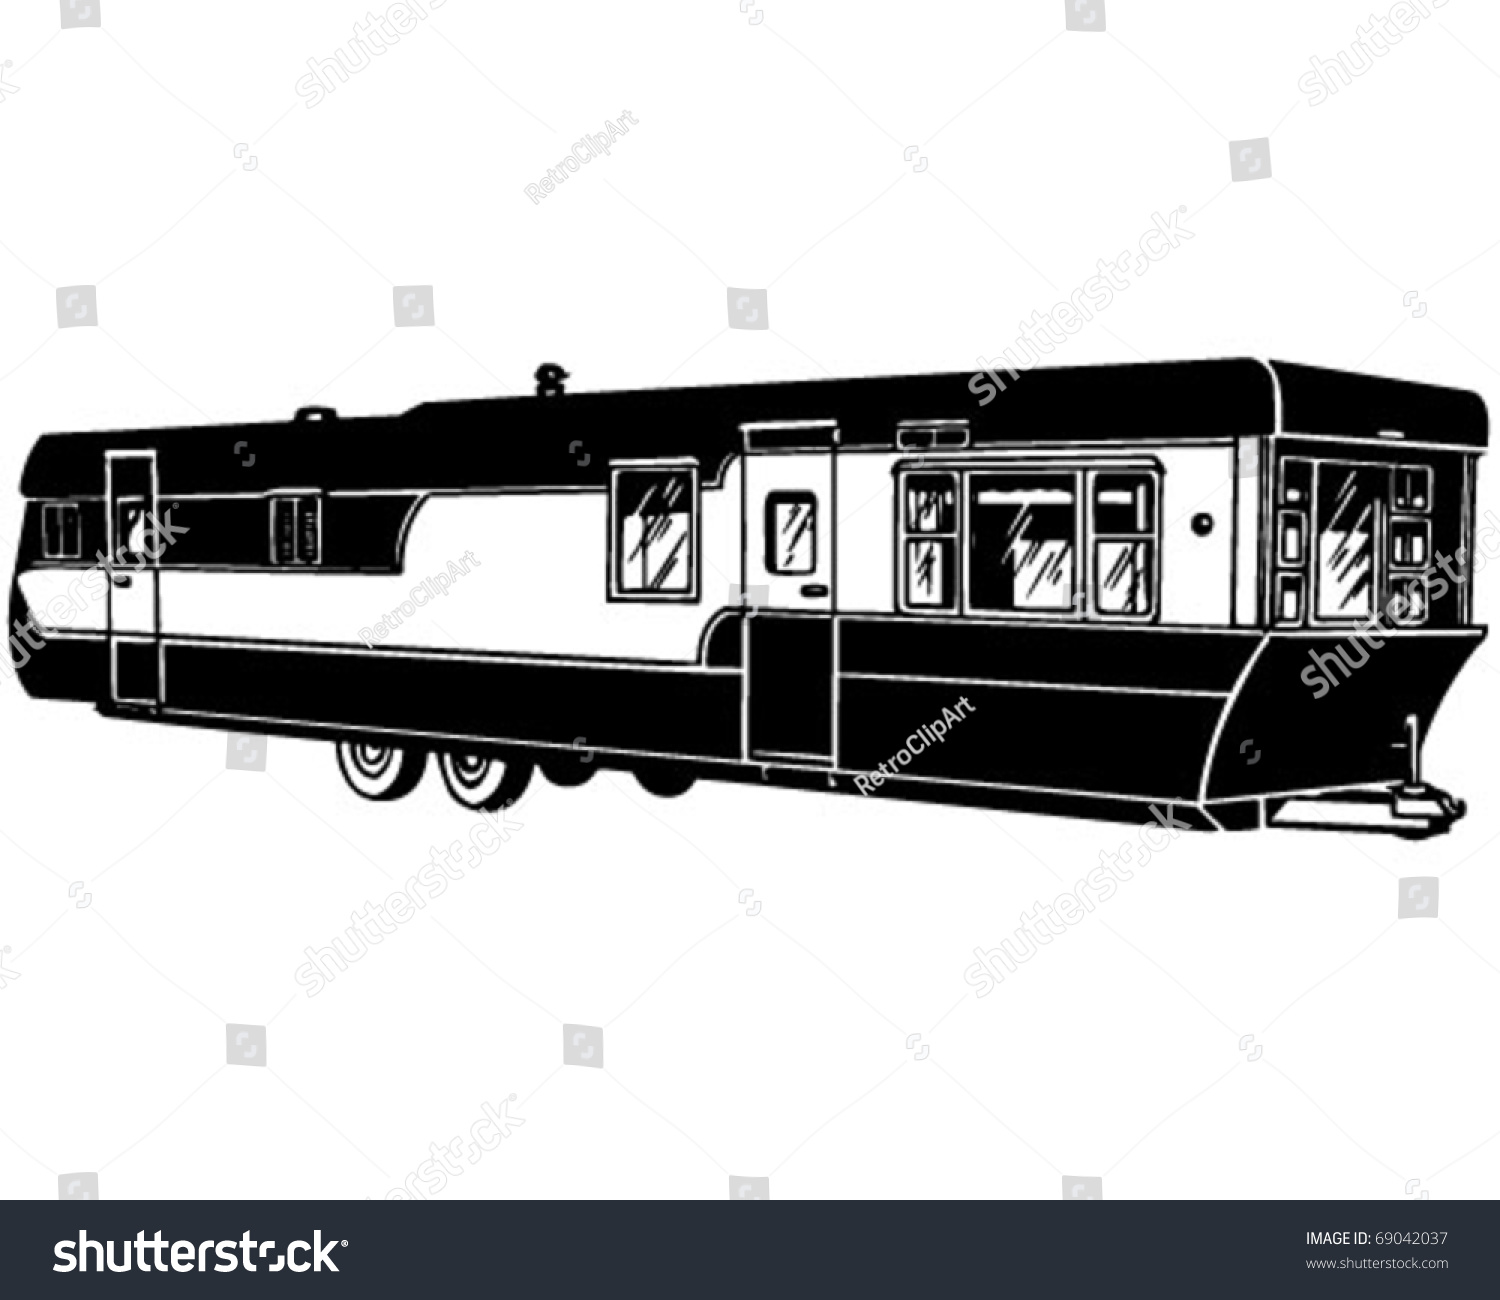 clipart mobile home - photo #12